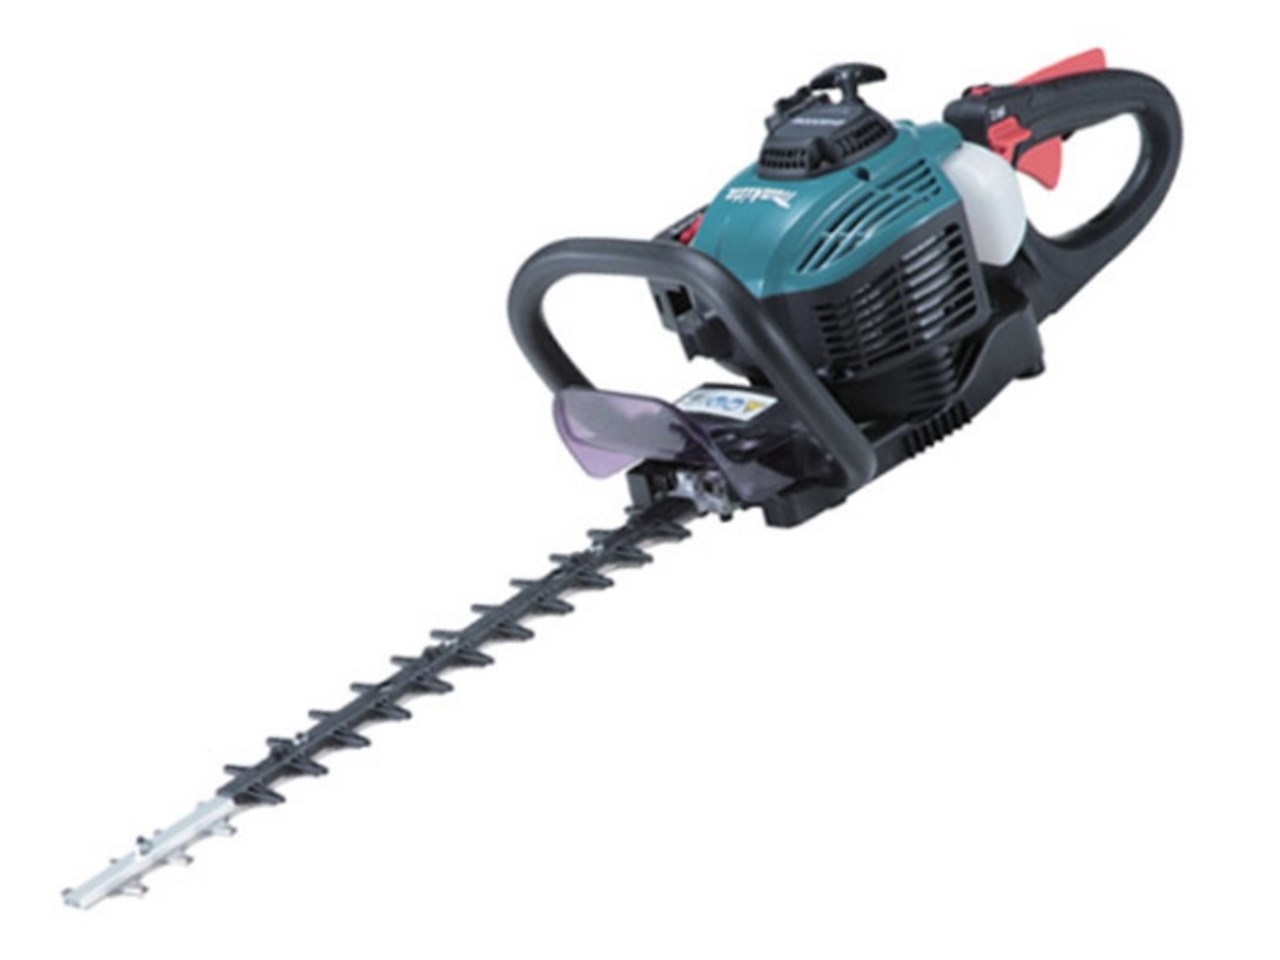 makita eh7500w 2 stroke petrol hedge trimmer 75cm. Black Bedroom Furniture Sets. Home Design Ideas